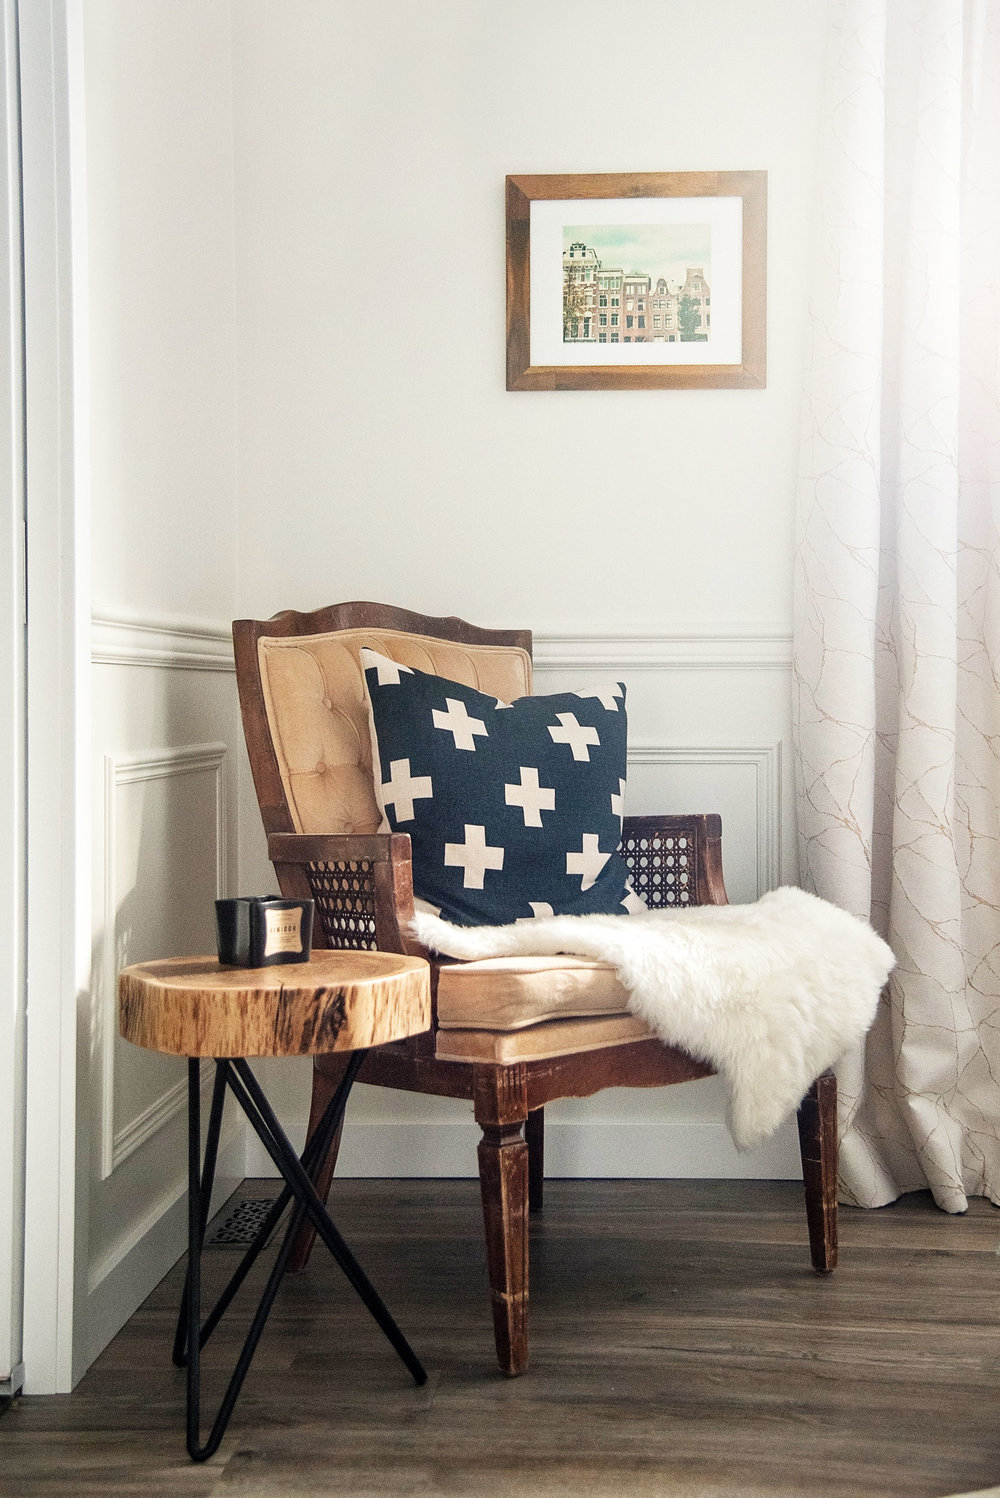 FARMER'S DAUGHTER INTERIORS: AVENUE FOUR